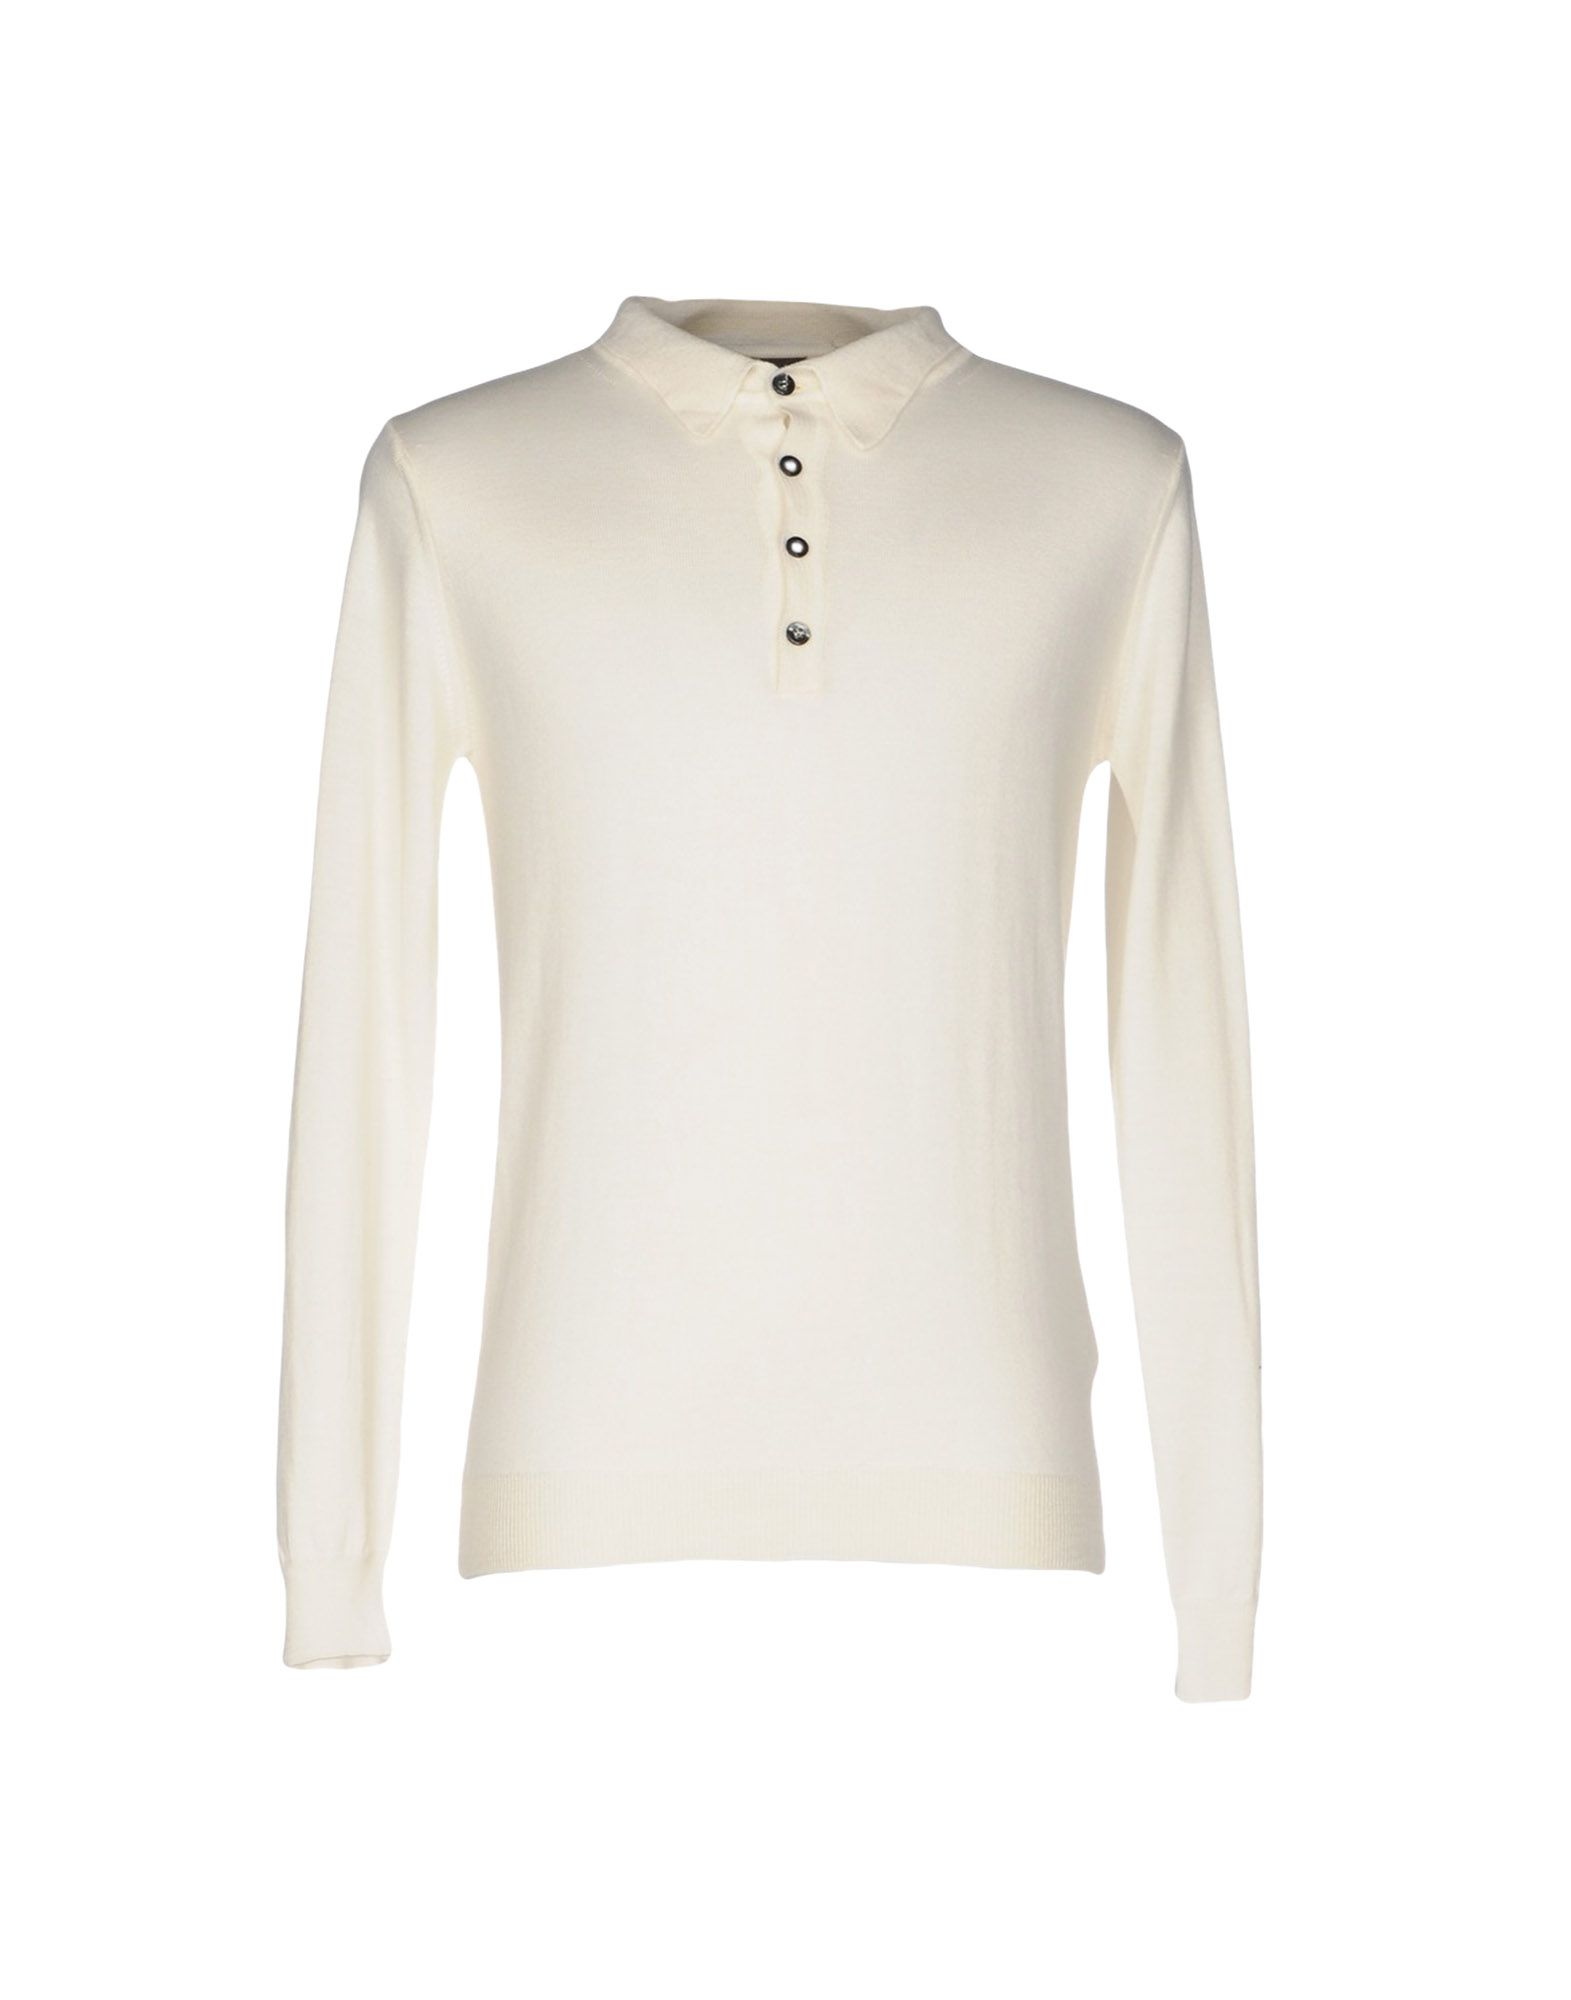 OSCAR JACOBSON Sweater in Ivory